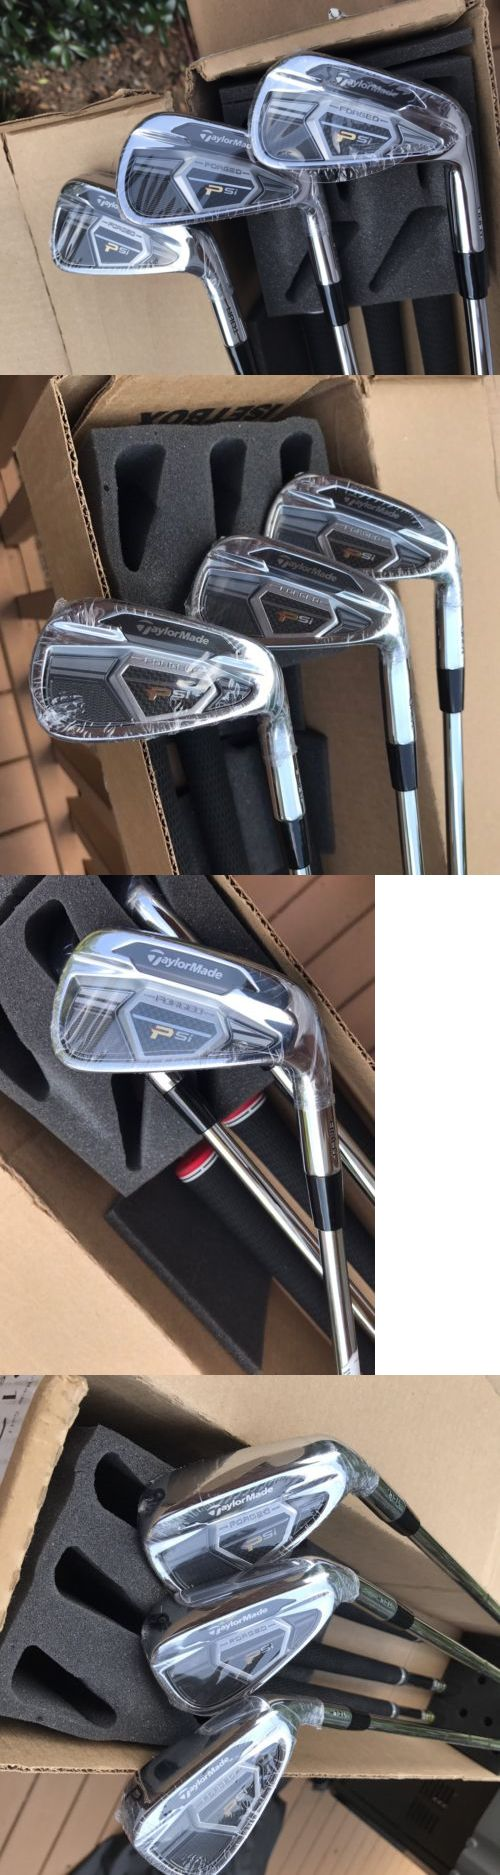 Golf Clubs 115280: Taylormade Rh Golf Clubs Psi Tour Iron Set (5-Pw), Dynamic Gold X-100 New -> BUY IT NOW ONLY: $490 on eBay!